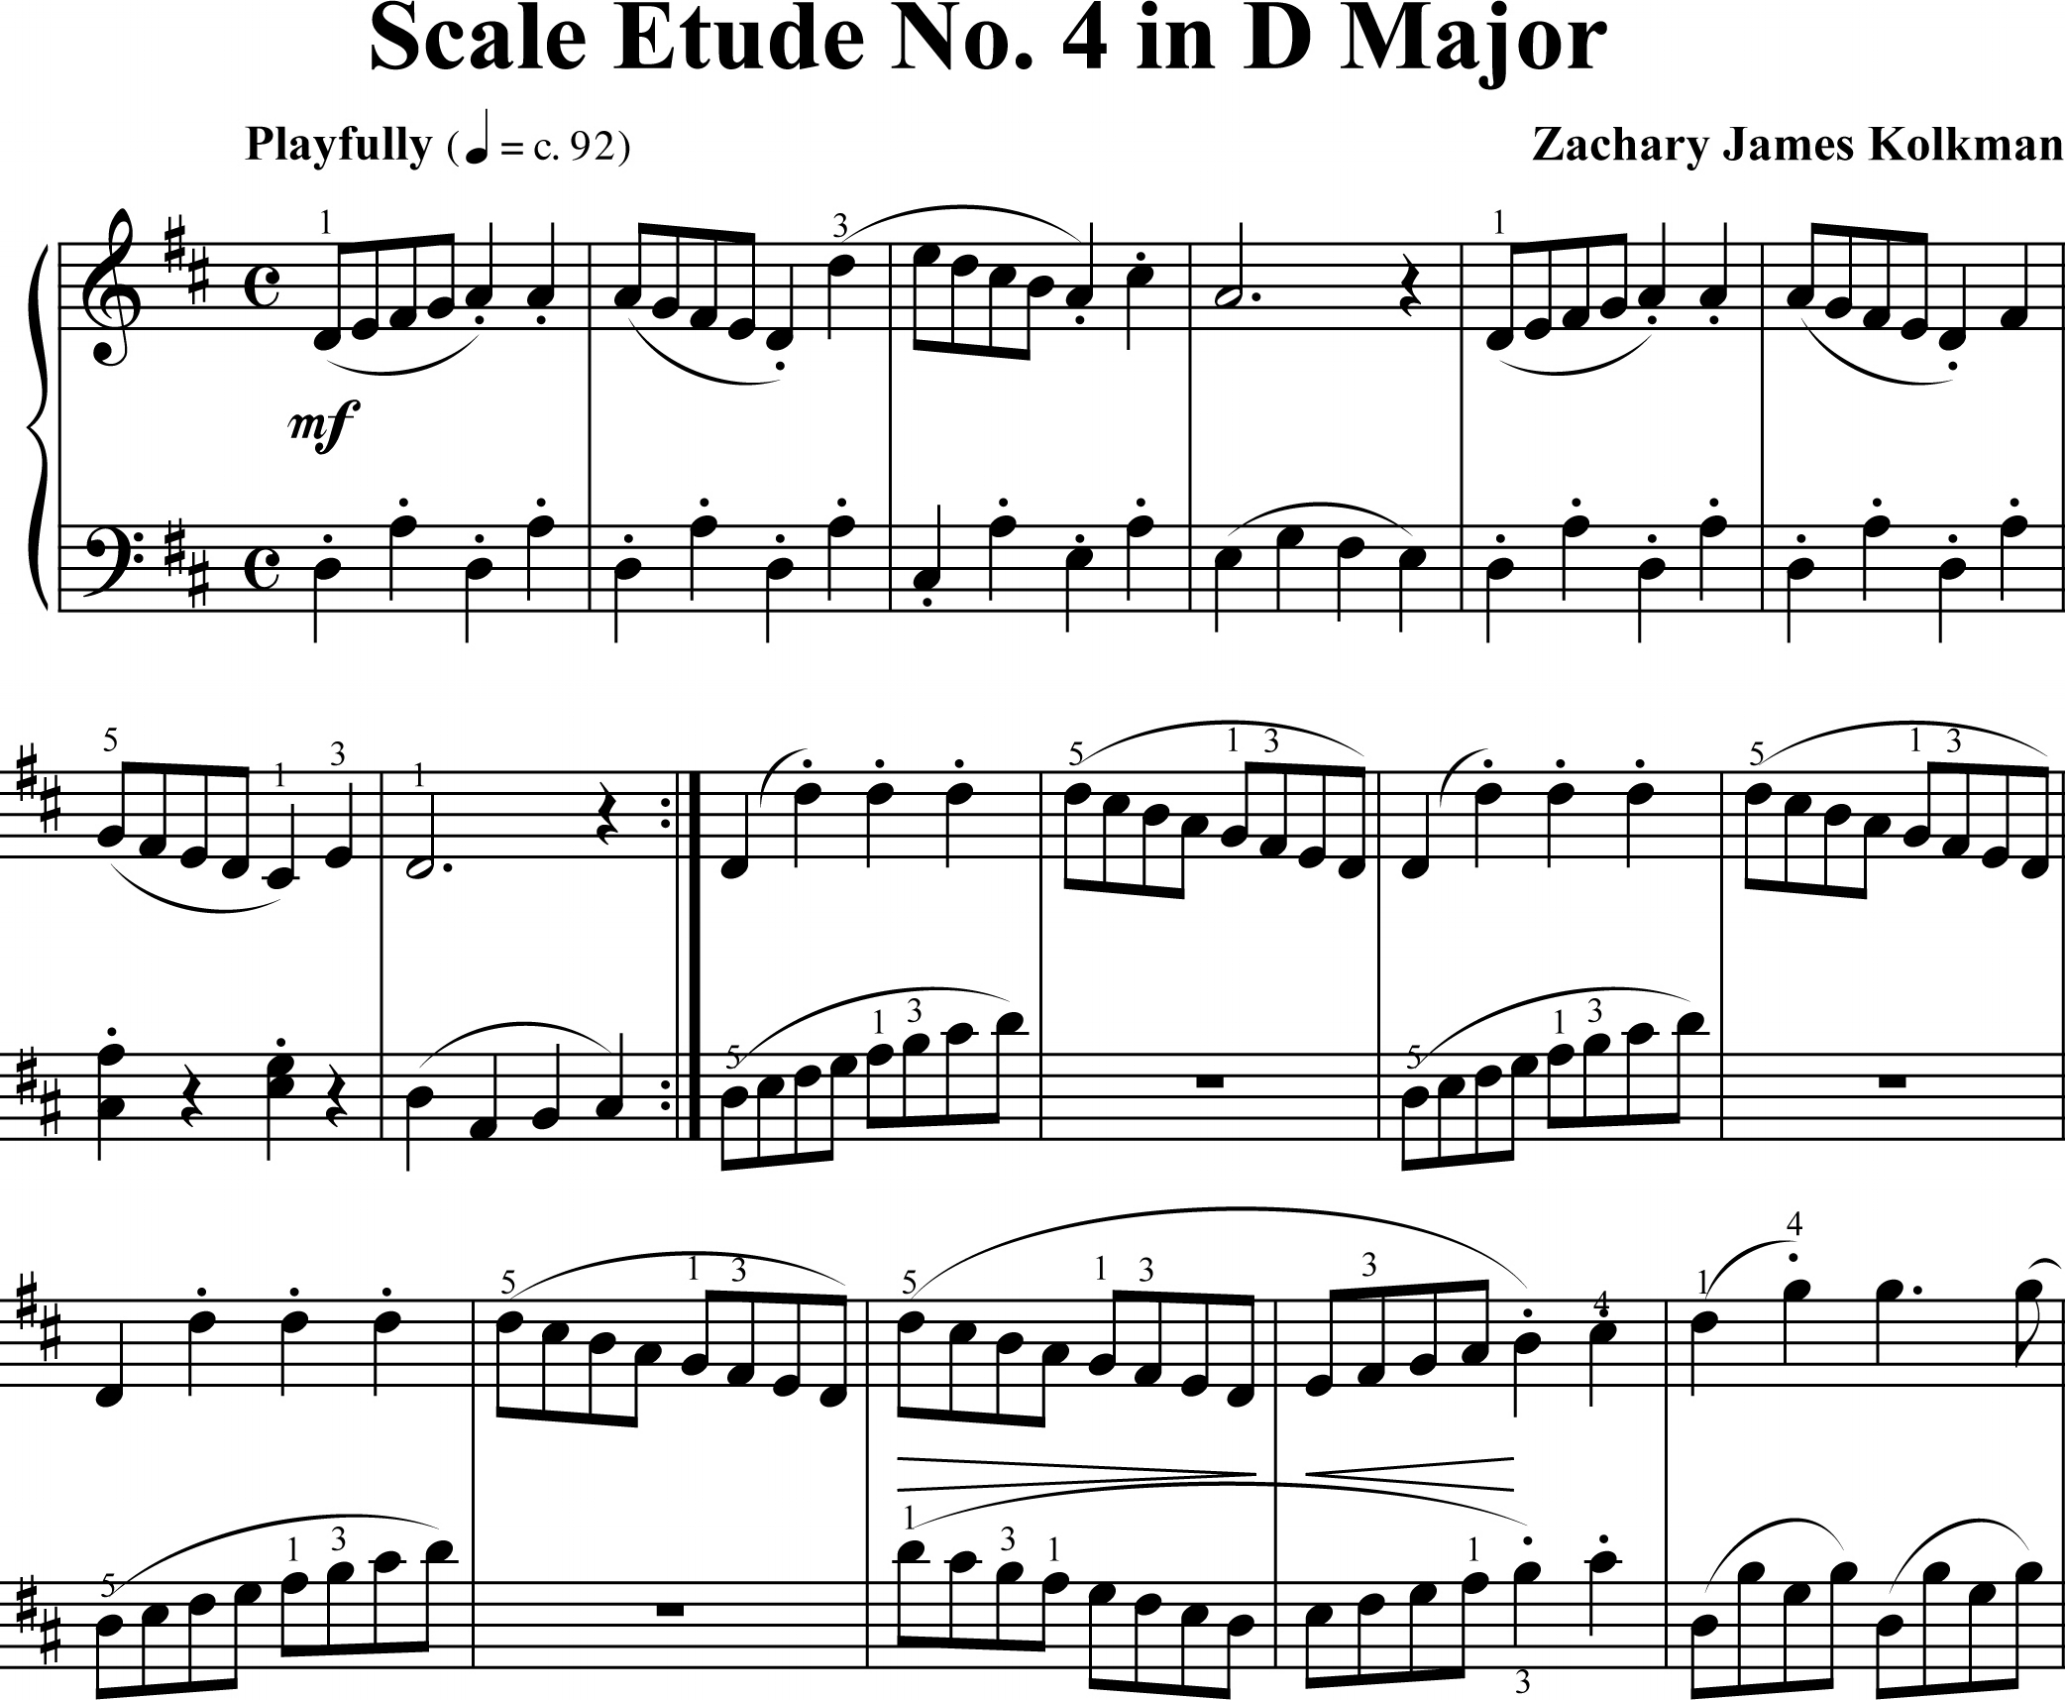 Sheet Music Download:  Scale Etude No. 4 in D Major